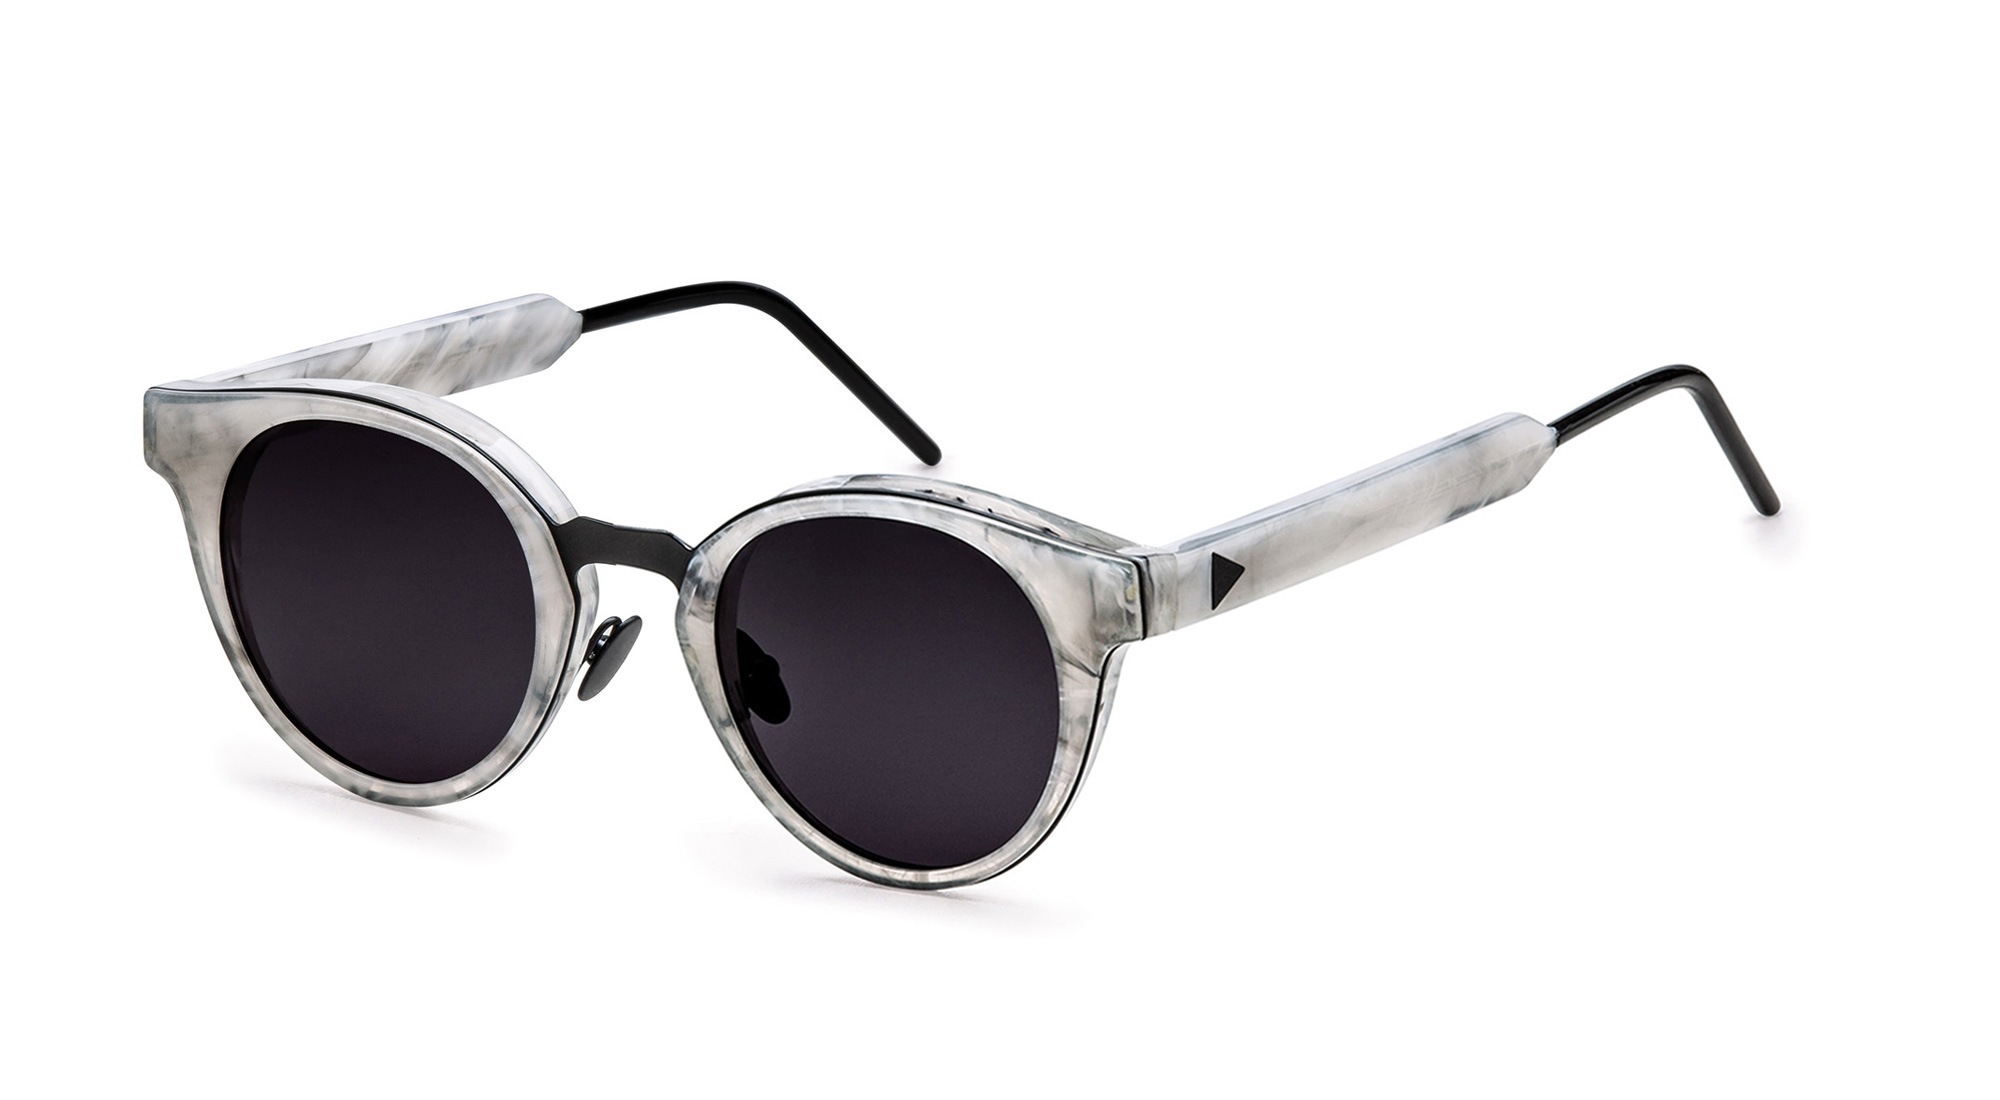 WILLIAMS_Eyewear_SOYA_WhiteMarble_3-4View